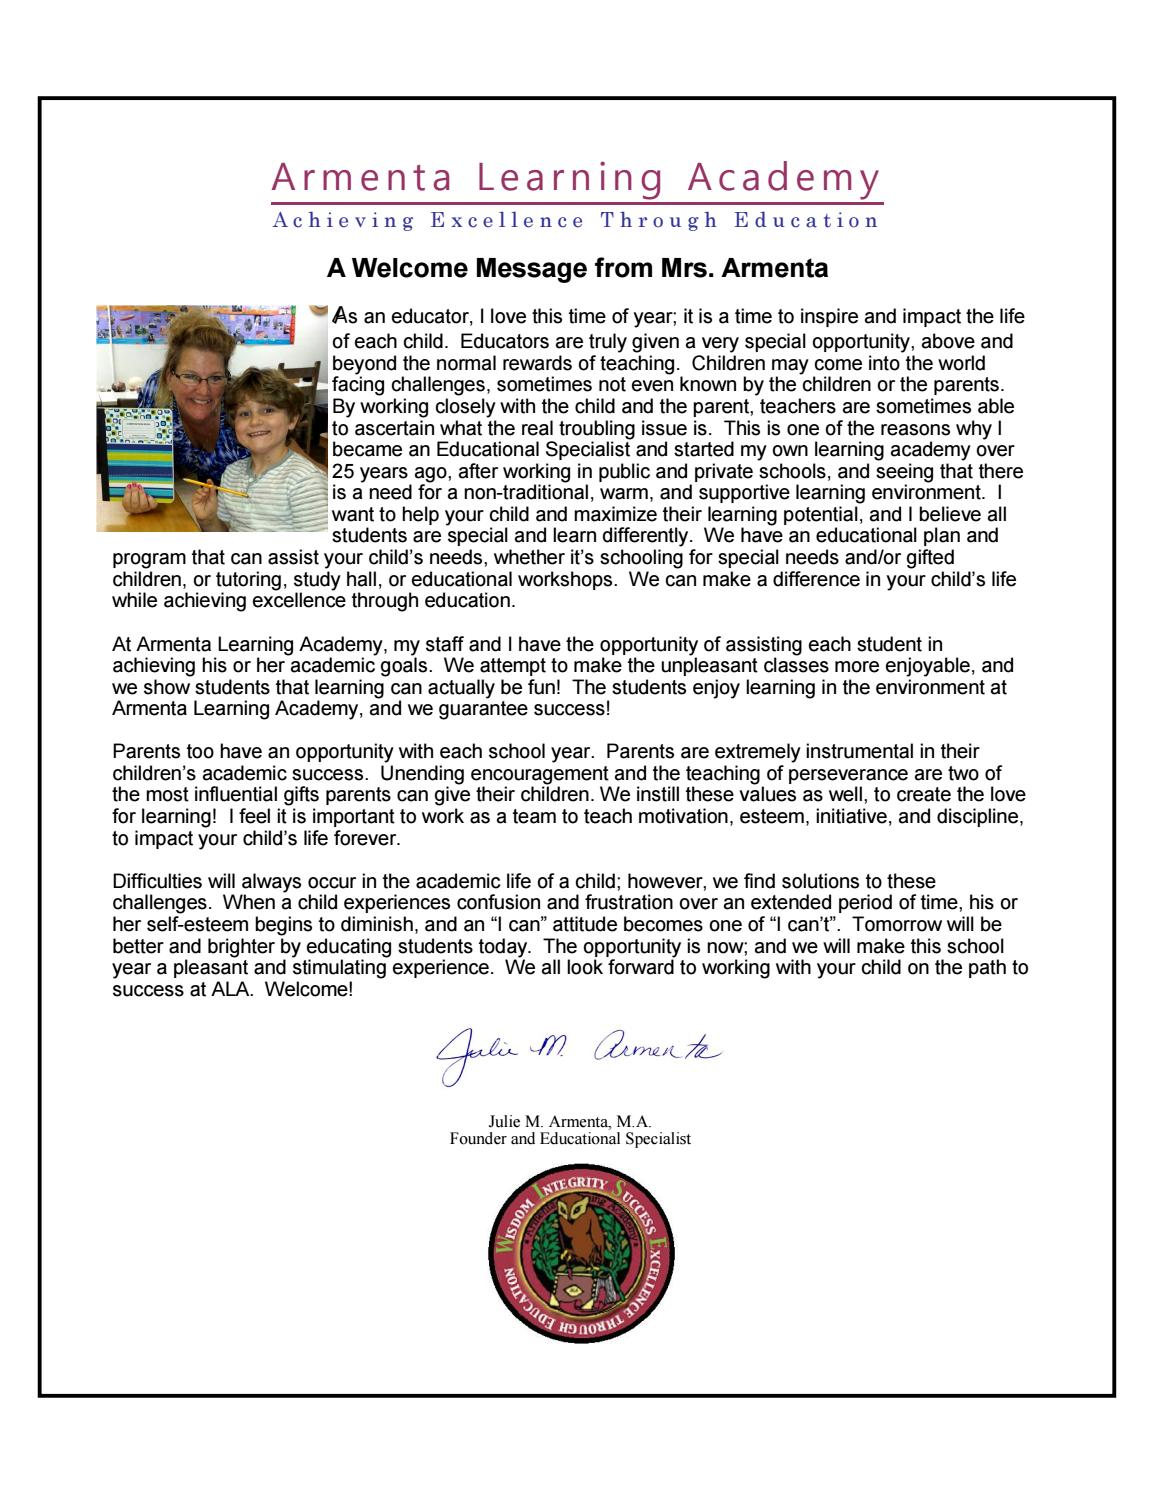 ALA Back to School Welcome Message from Mrs  Armenta by